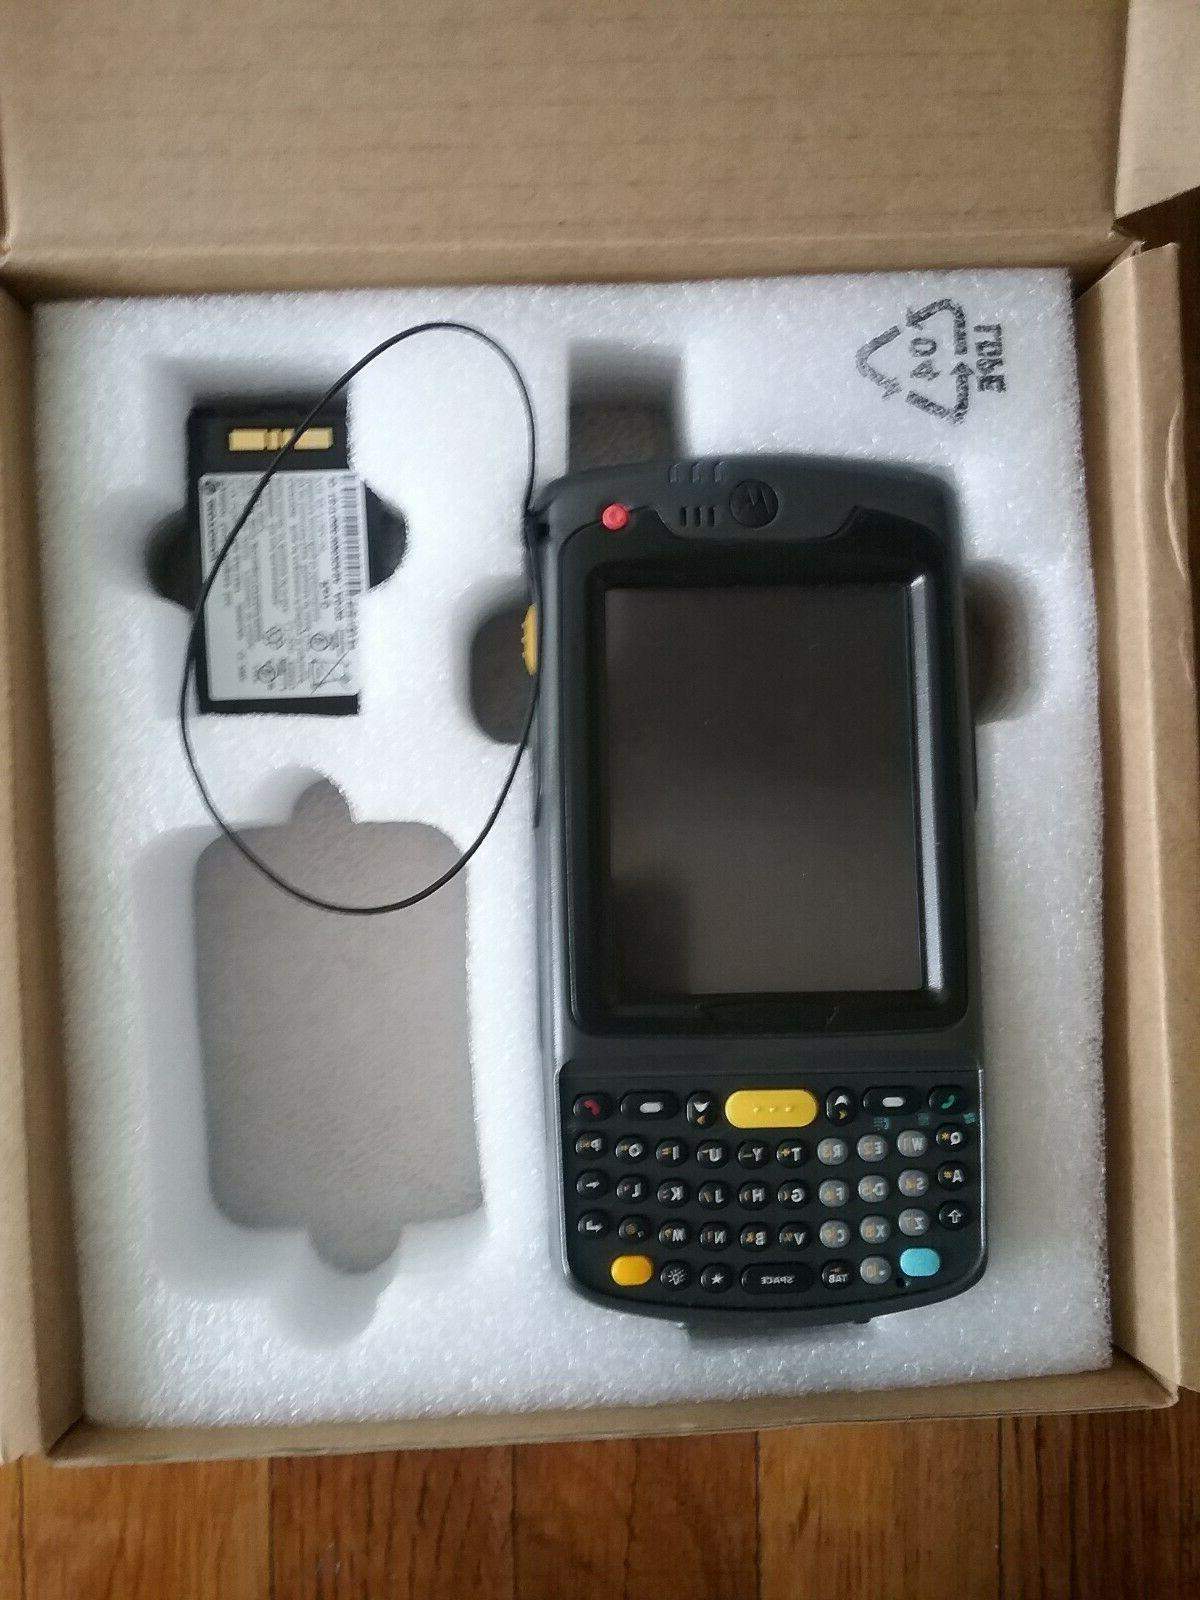 mc7090 mobile handheld computer barcode scanner w